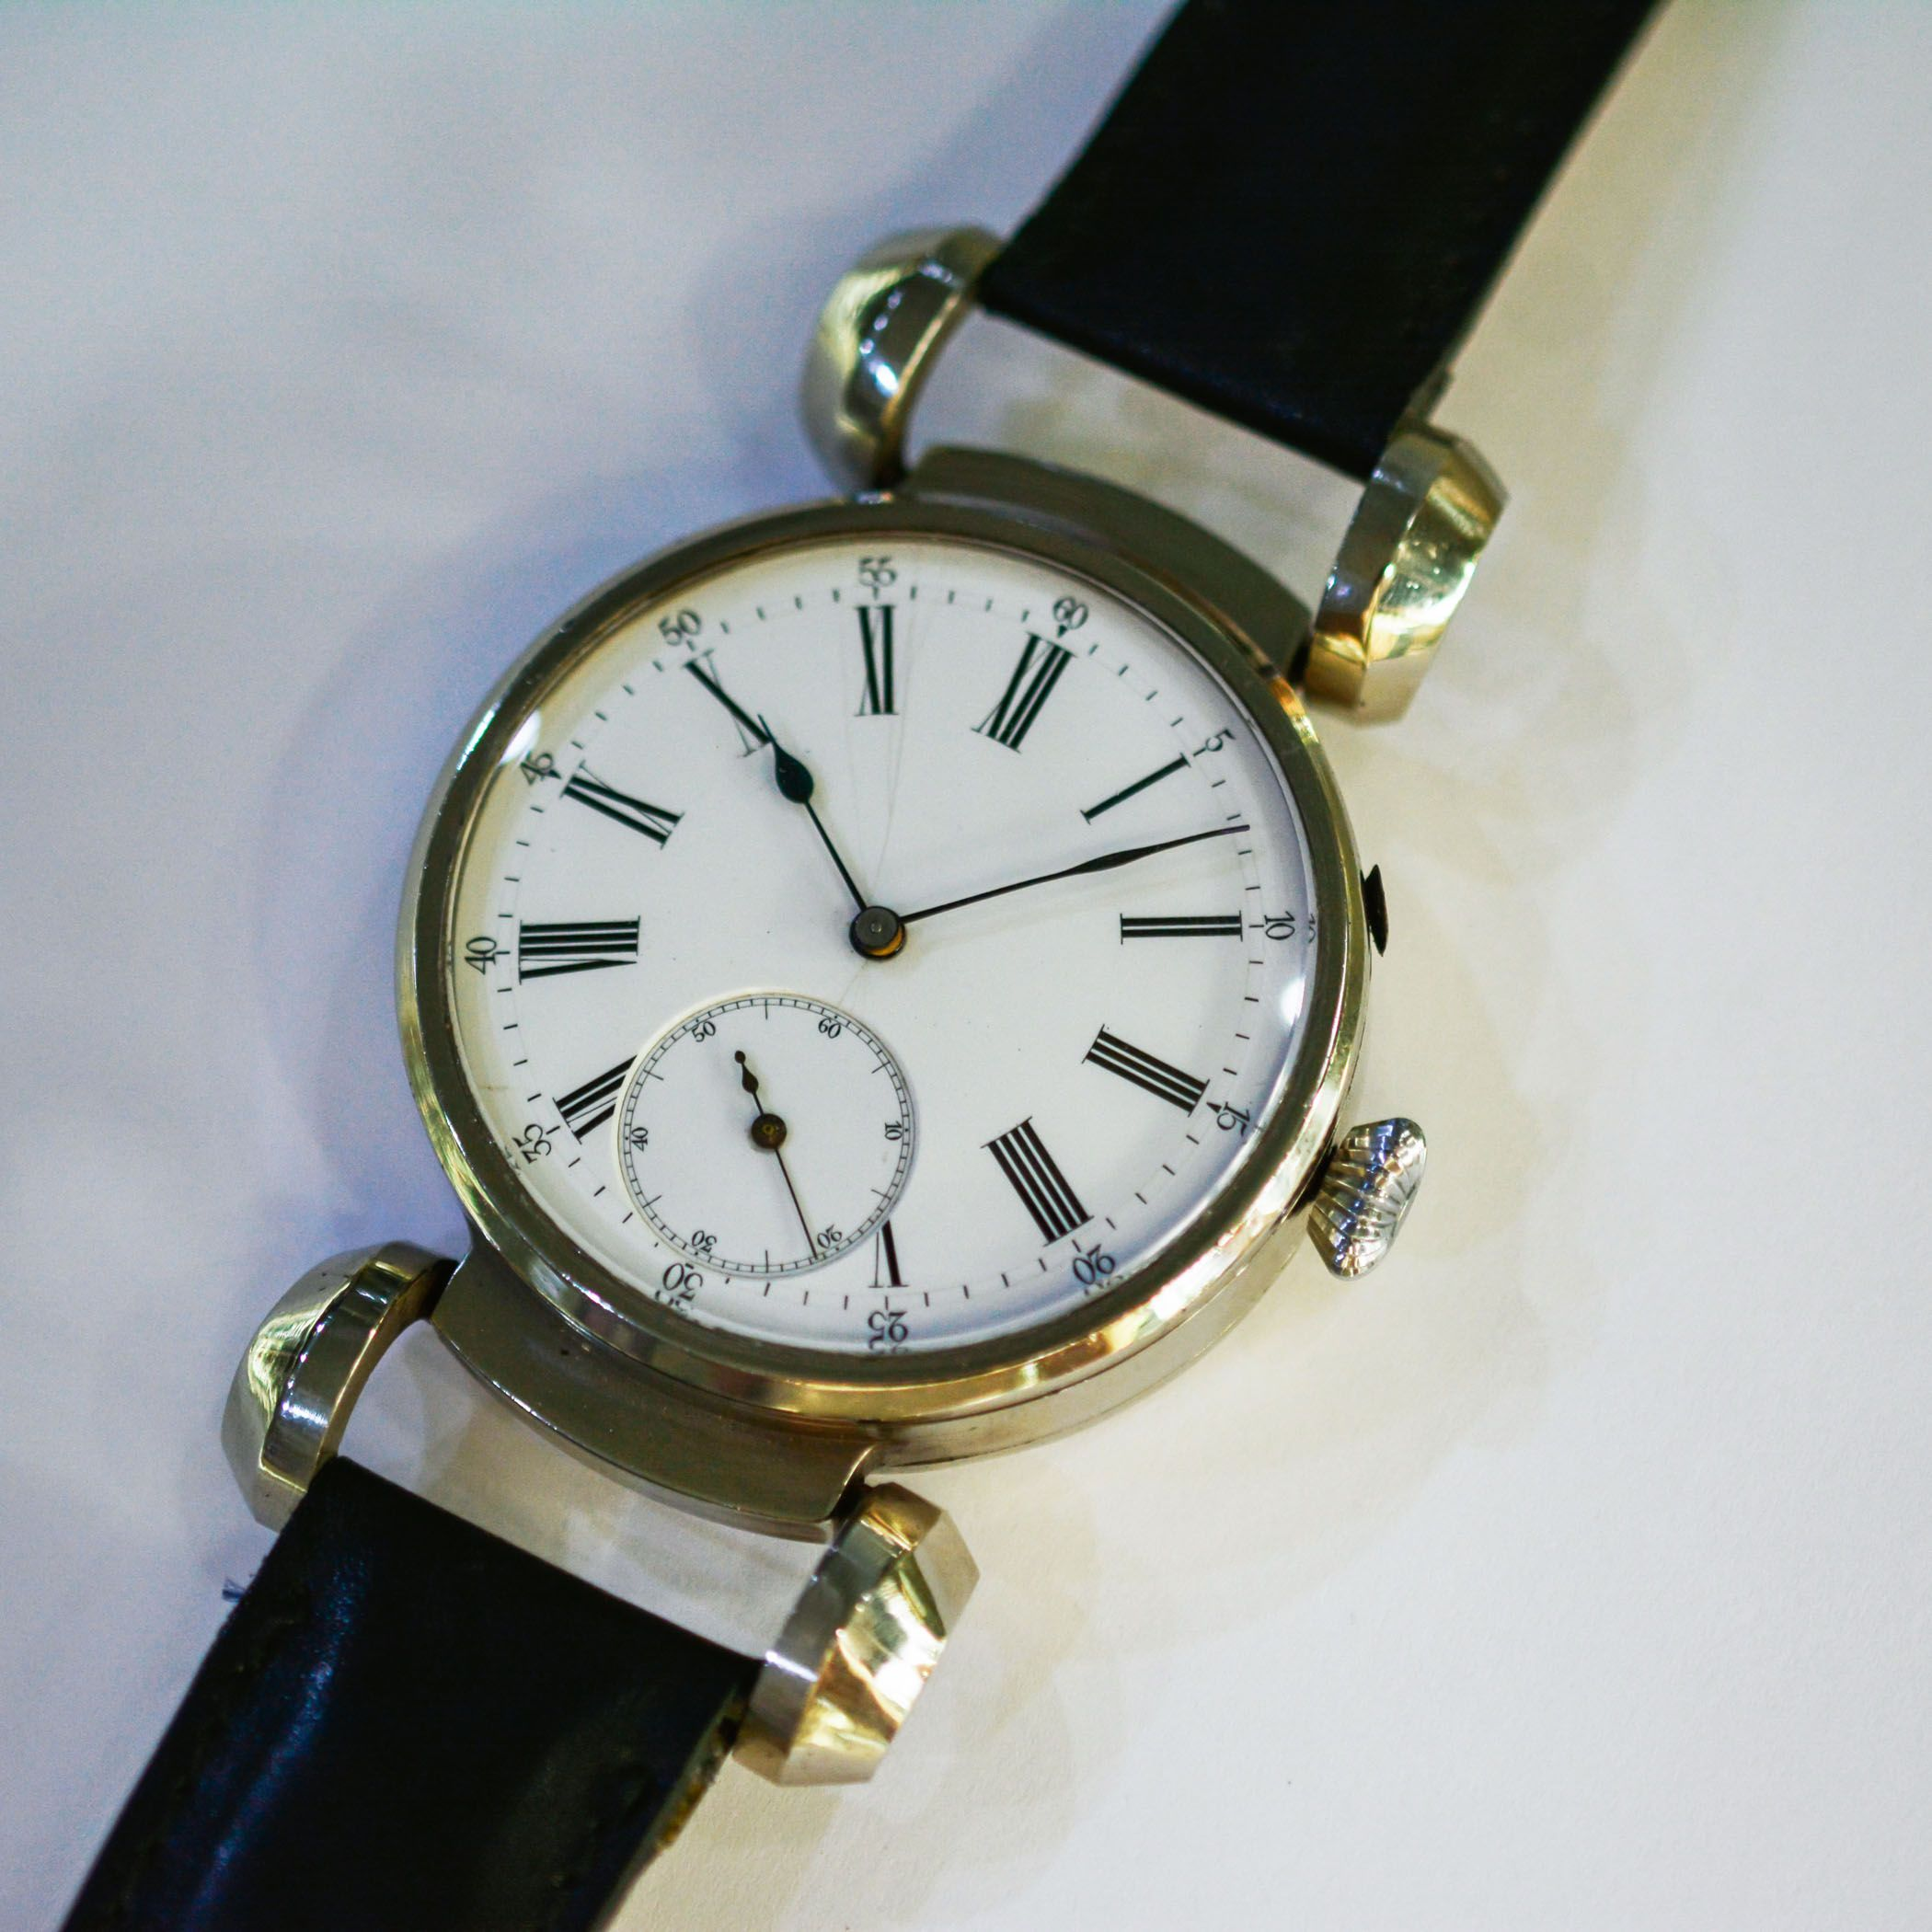 In-Depth - The Merging of Pocket Watches and Wristwatches